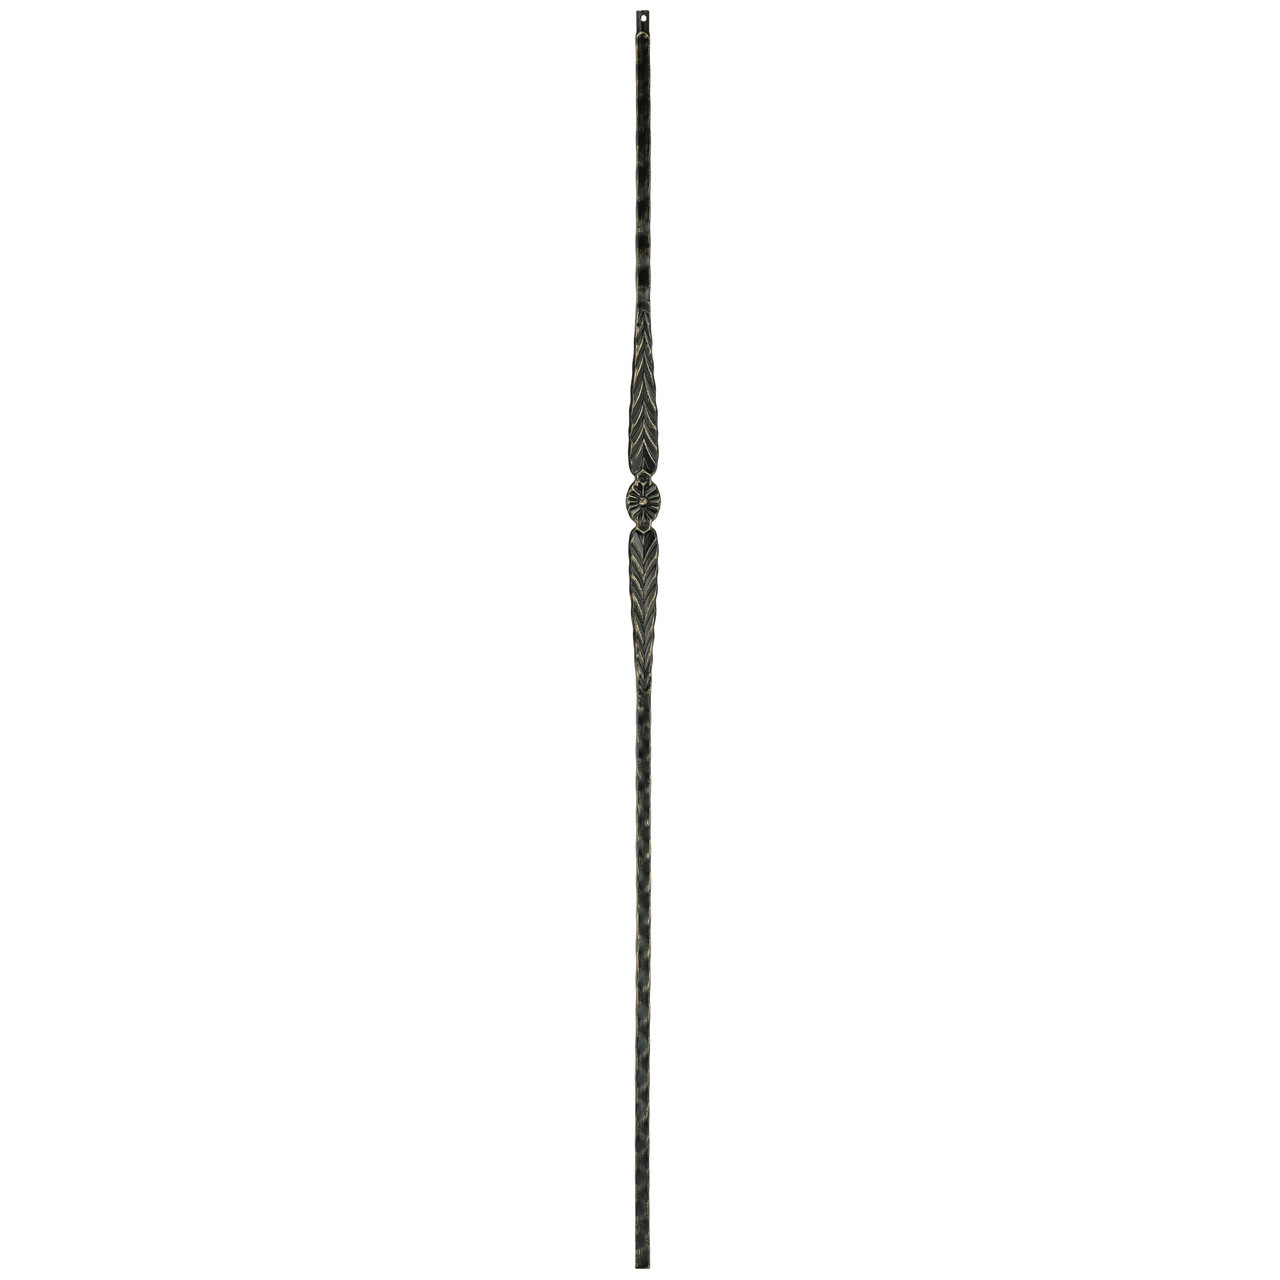 T-21 Flower with Arrows Edge Hammered Tubular Steel Baluster